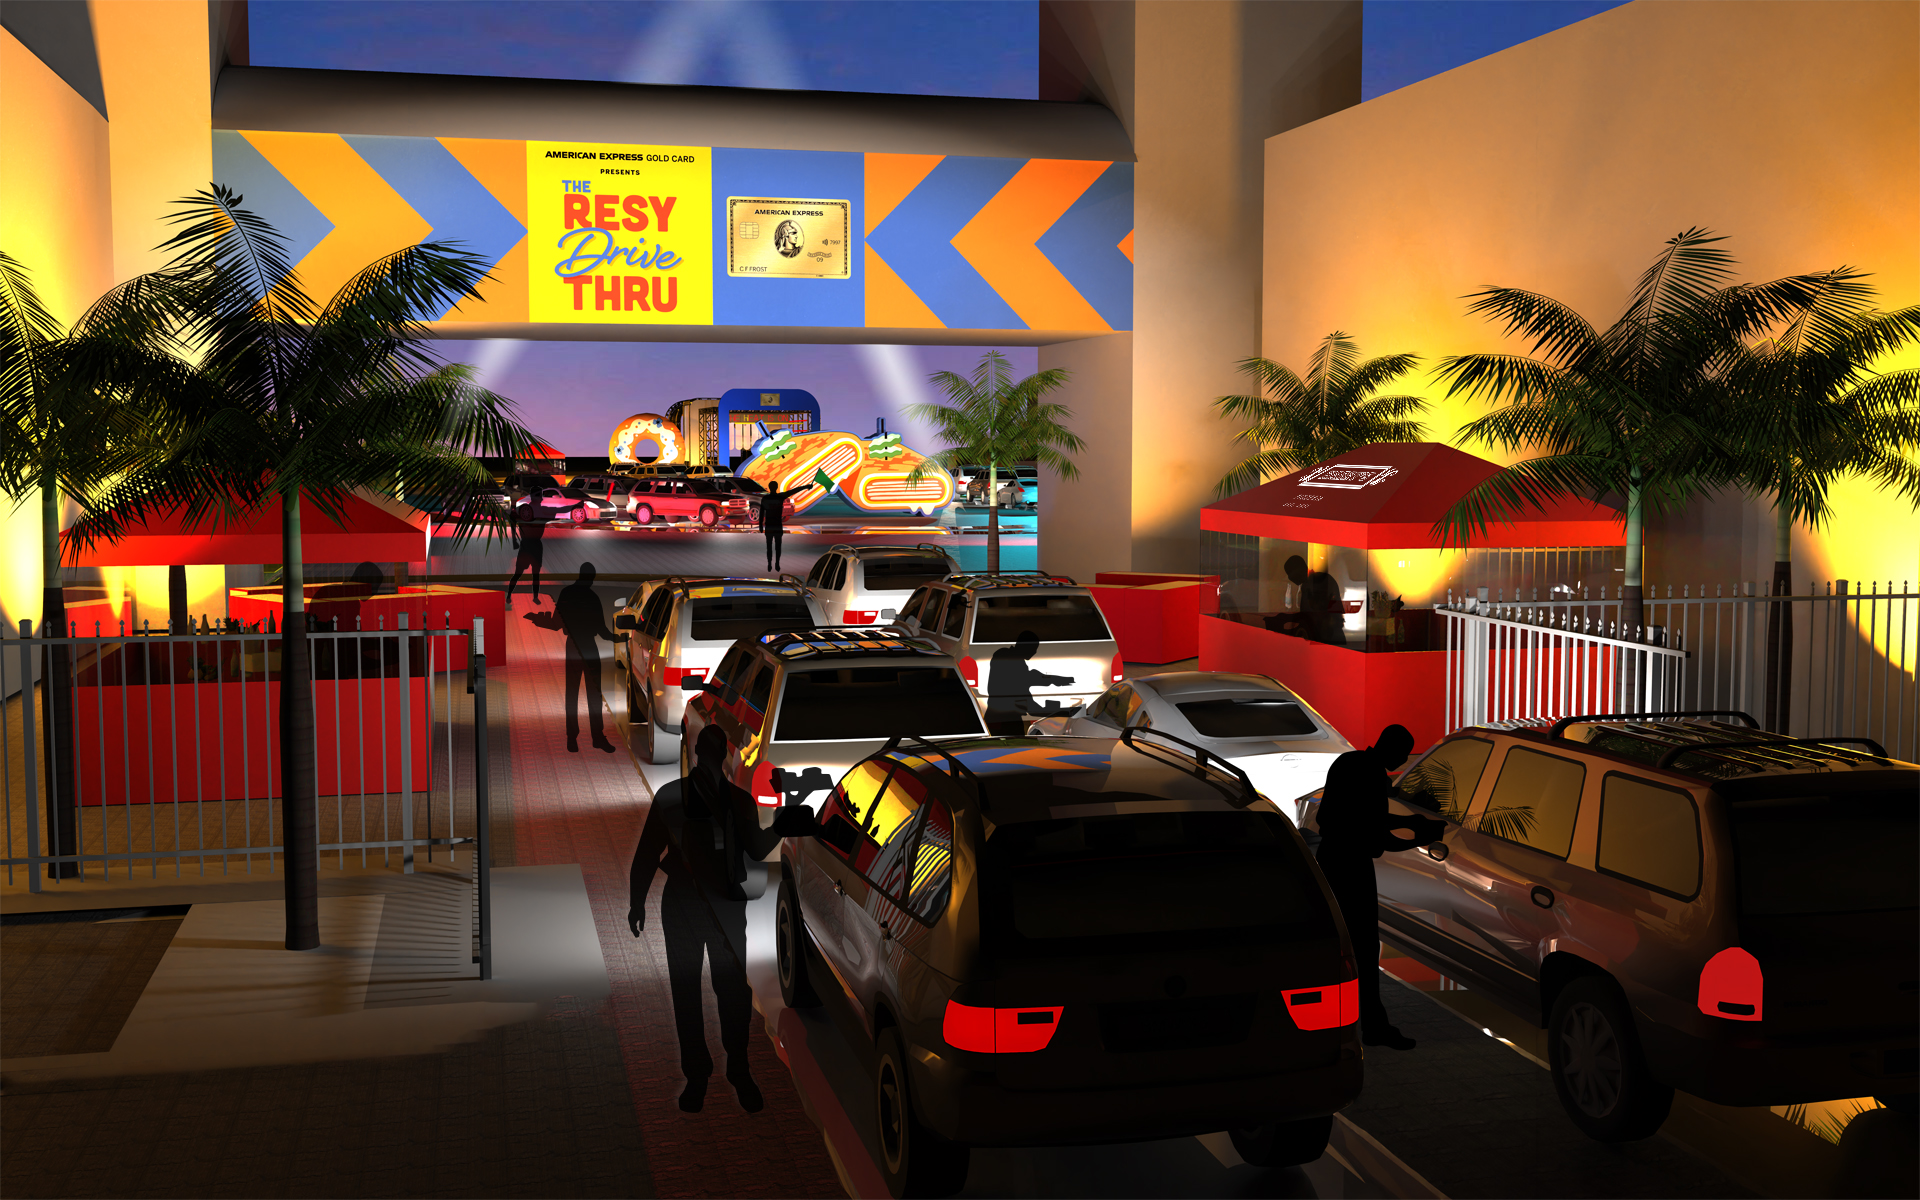 Cars driving into a colorful area